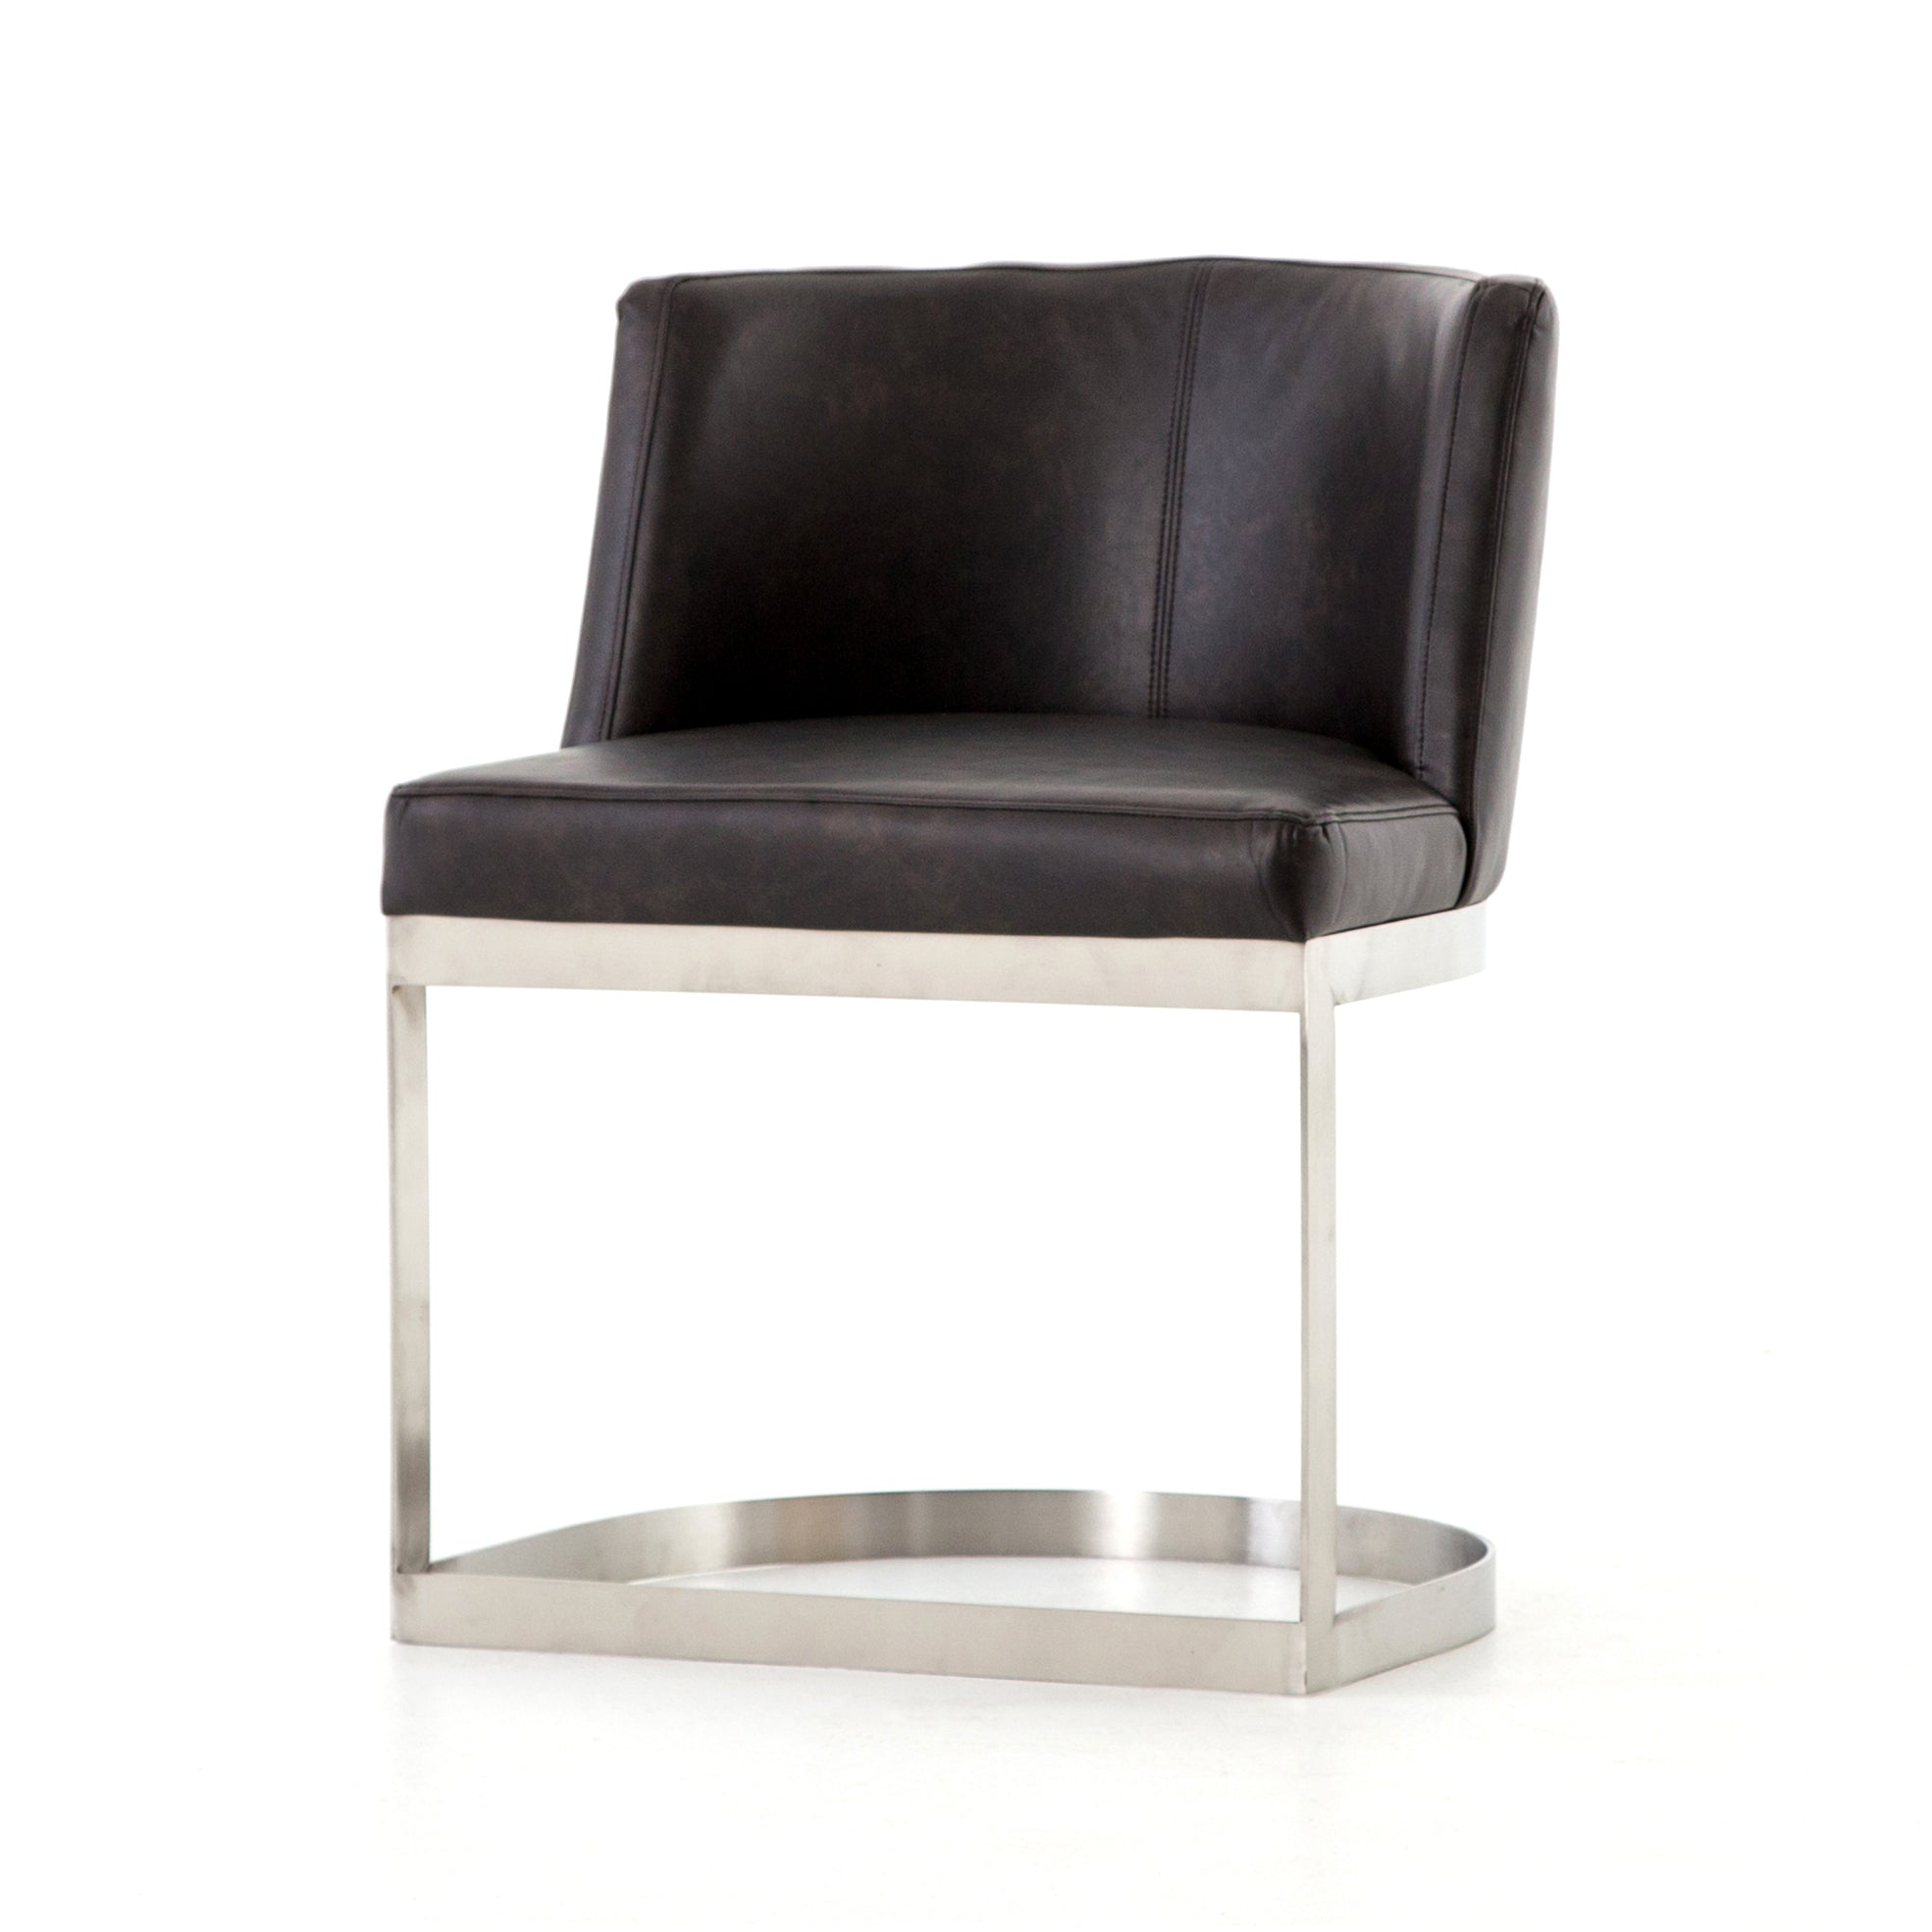 crispin-dining-chair